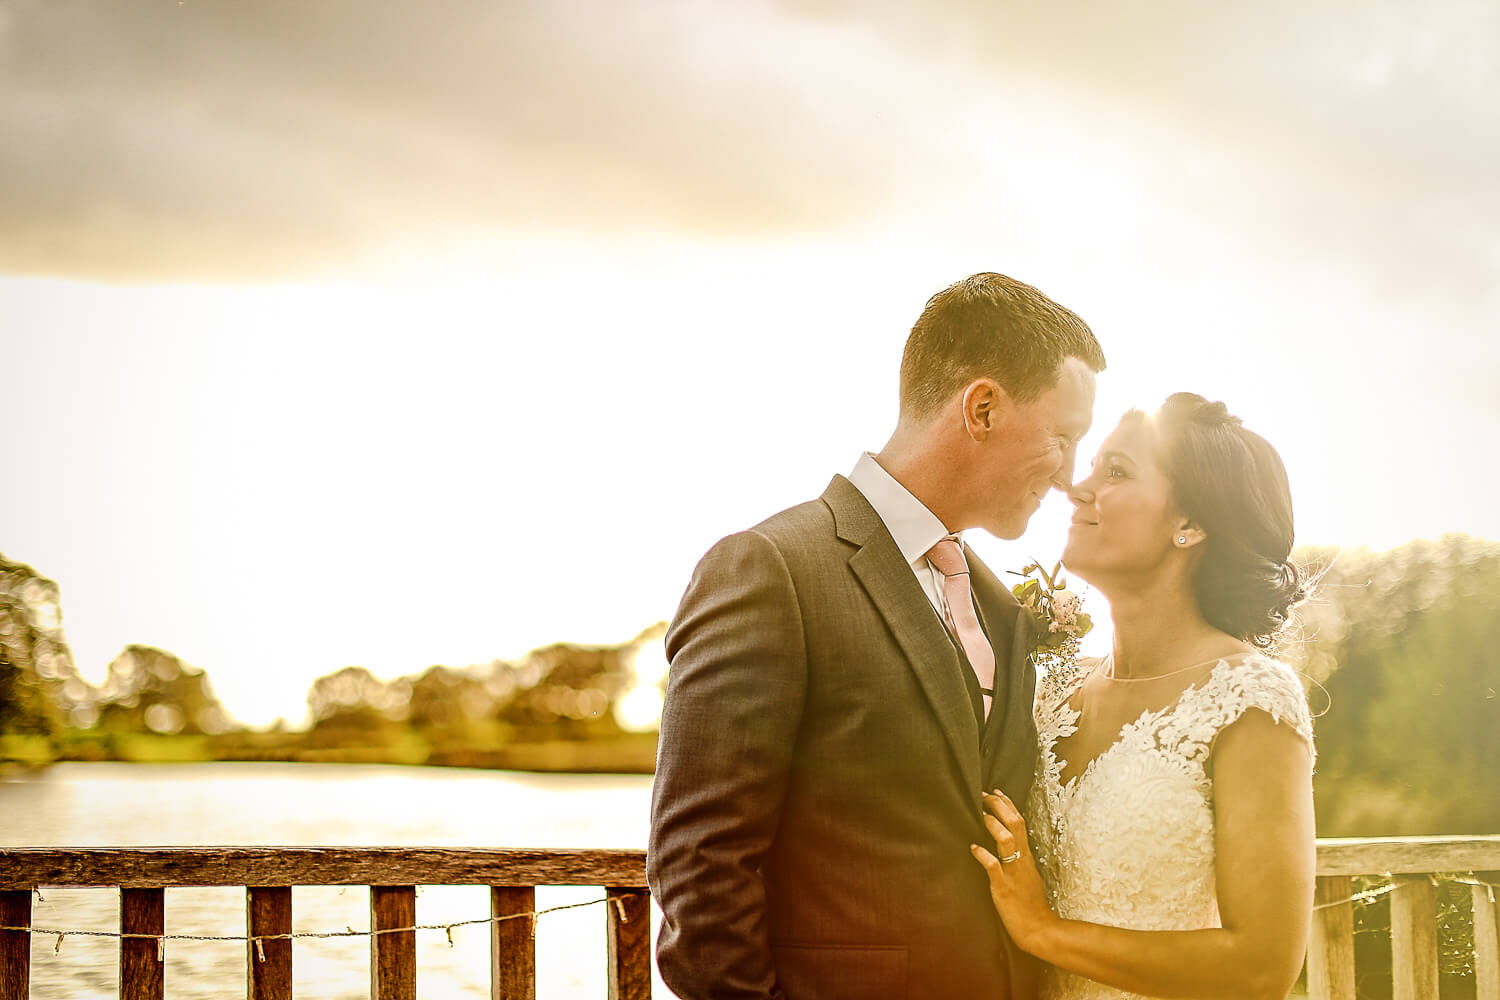 Sunset photo of bride and groom with lake in background Sandhole Oak Barn wedding photography